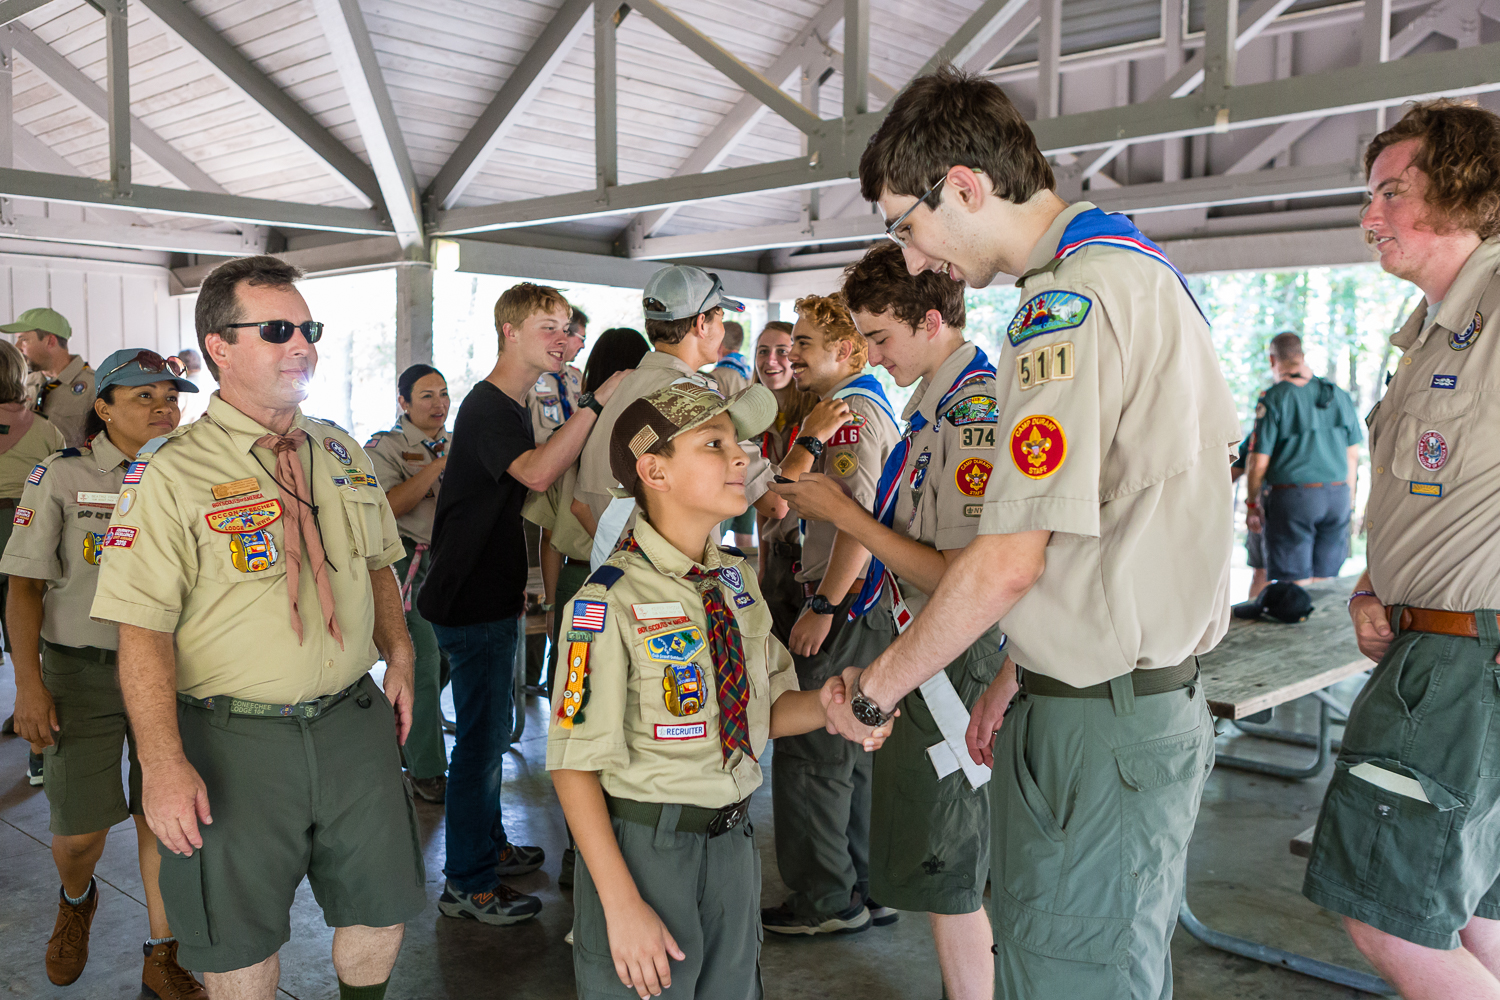 eagle-scout-ceremony-14.jpg